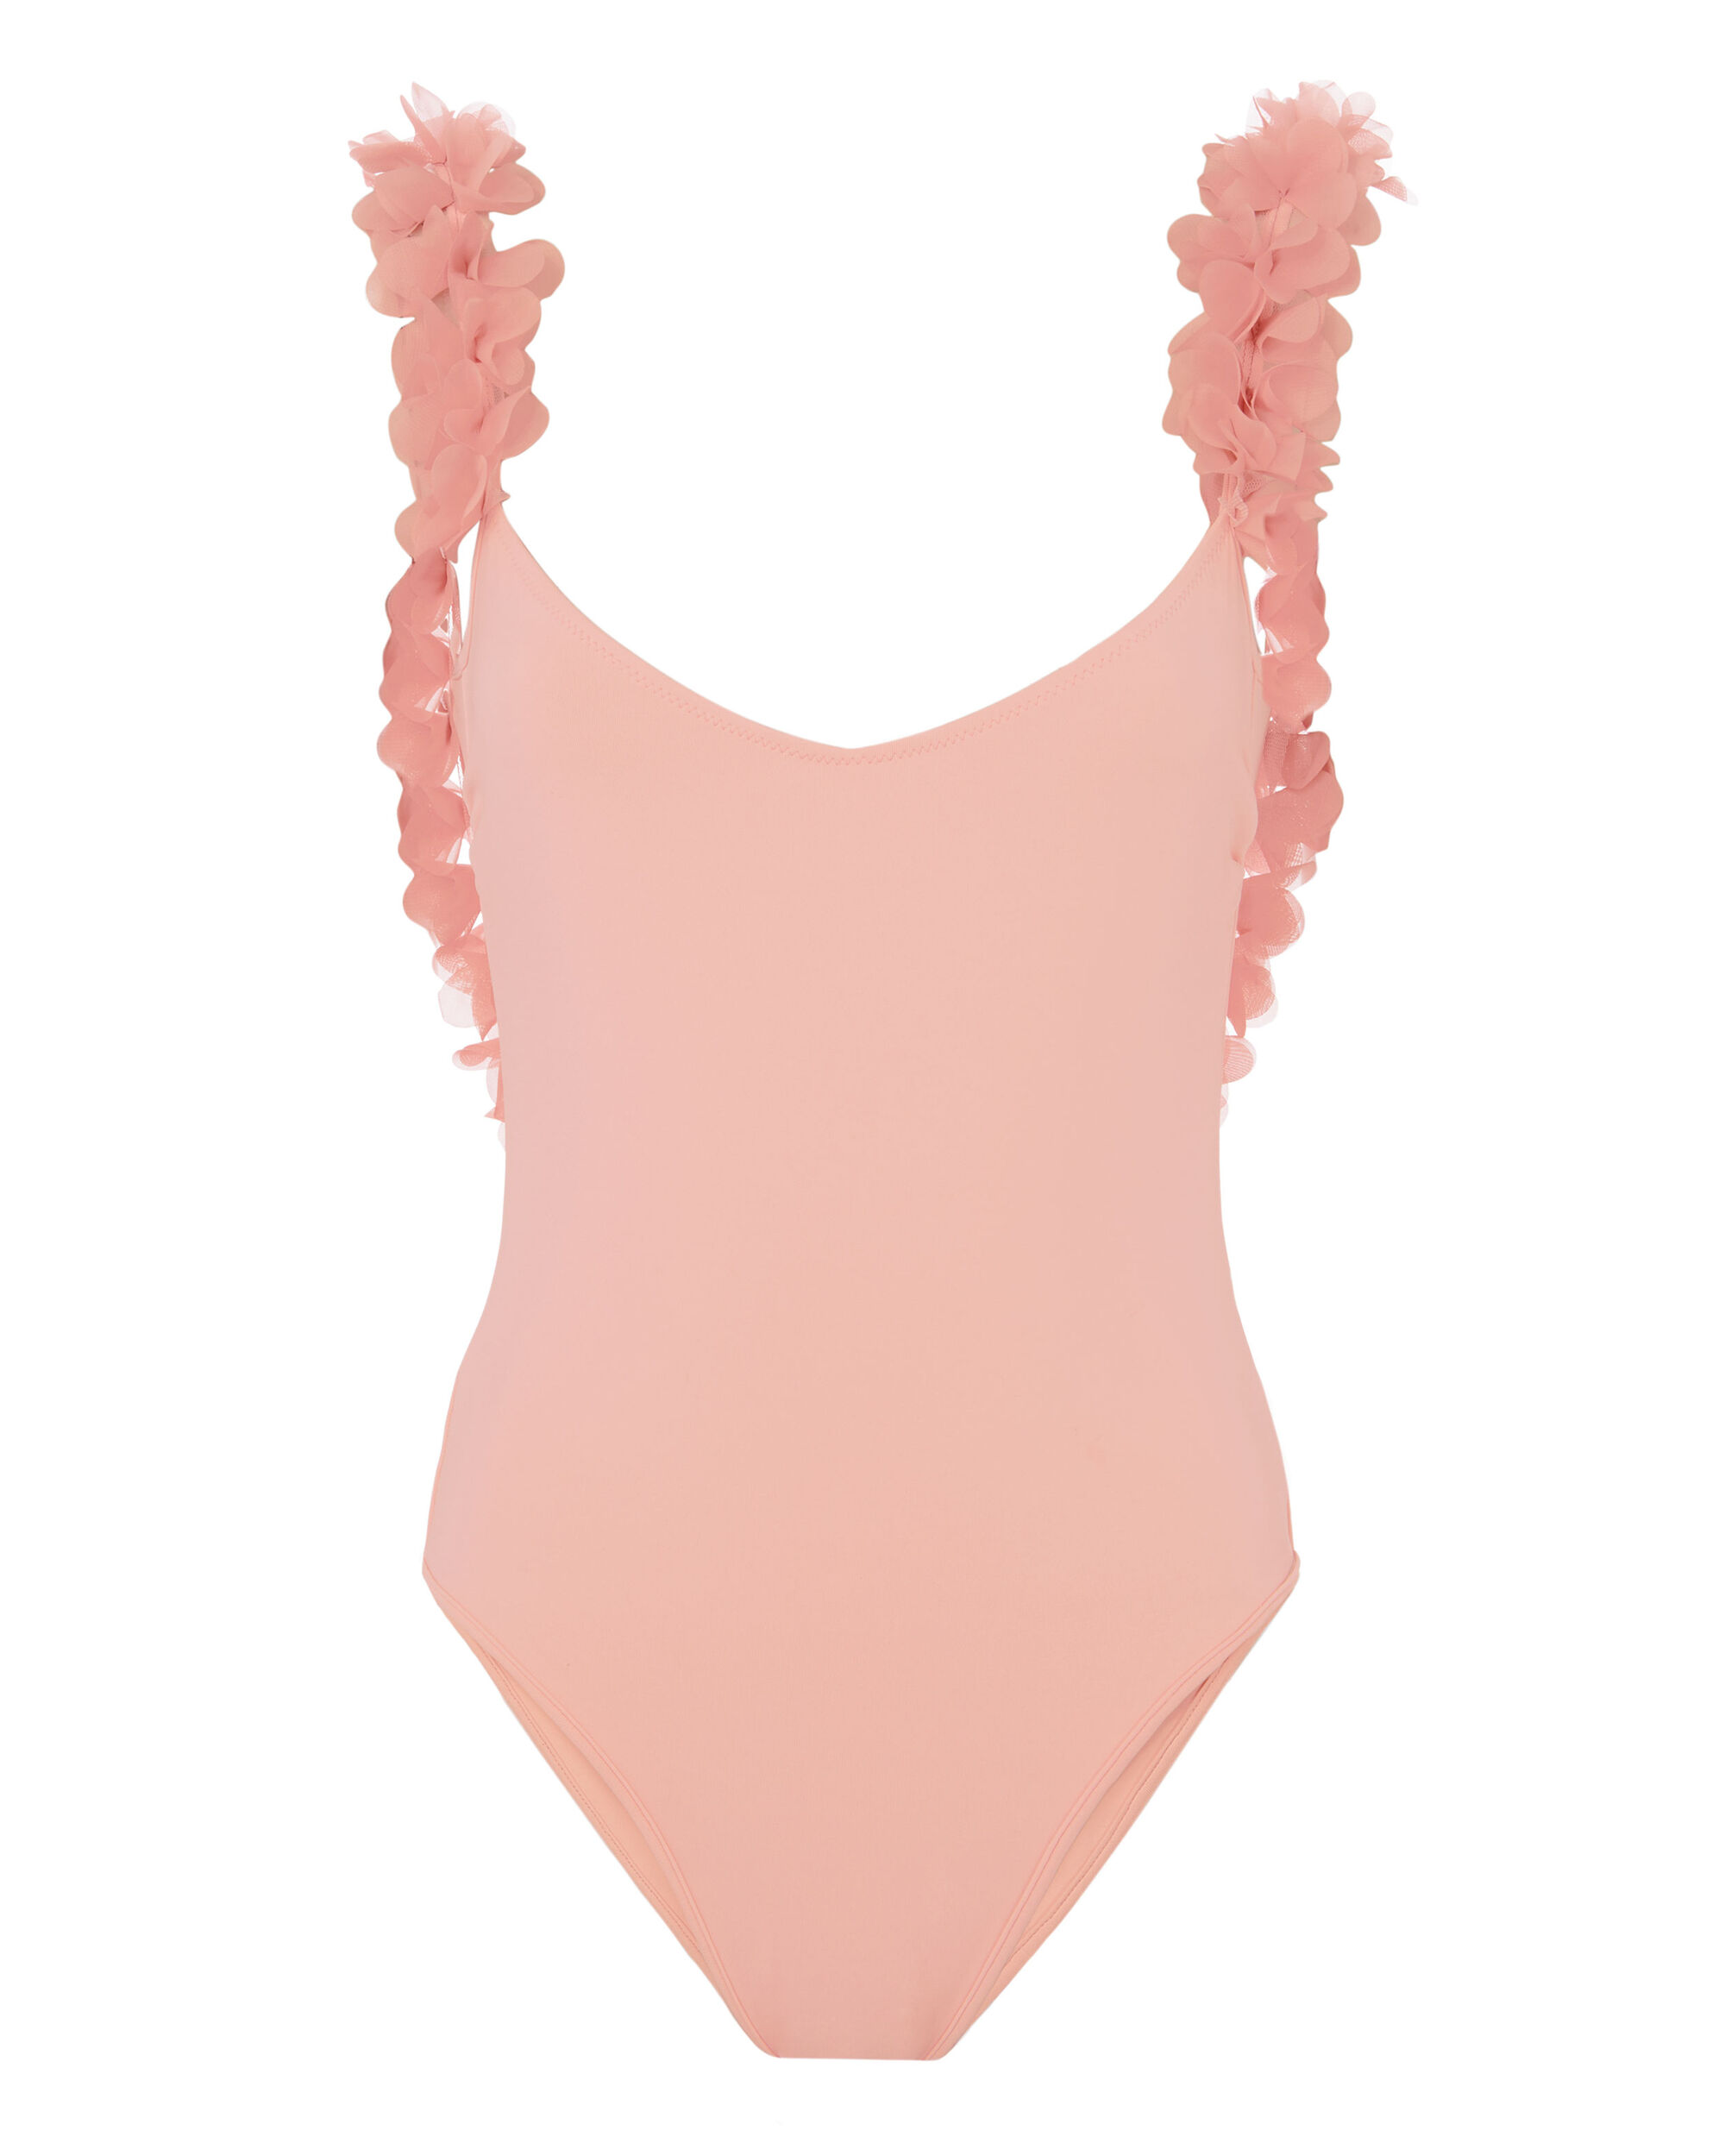 Amira Petal Pink One Piece Swimsuit, PINK, hi-res